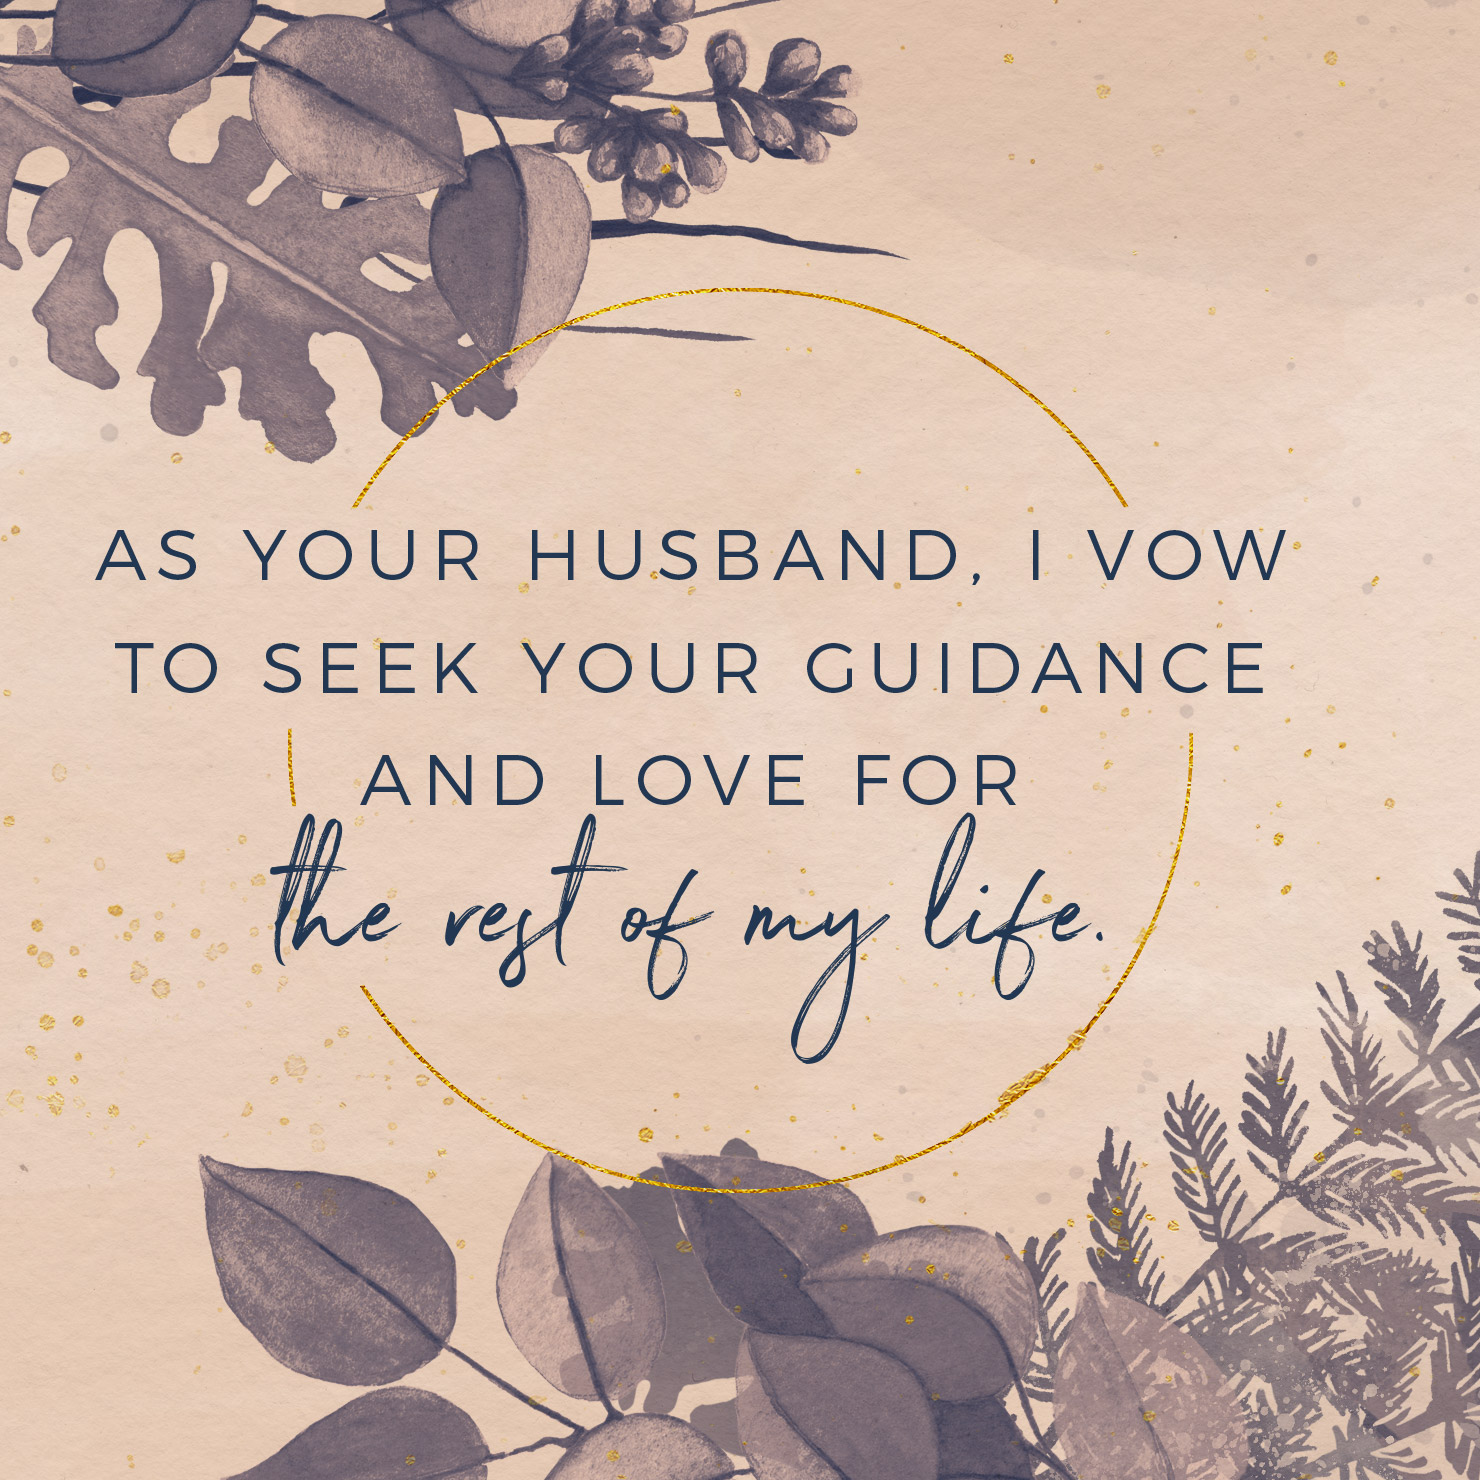 As your husband, I vow to seek your guidance and love for the rest of my life.